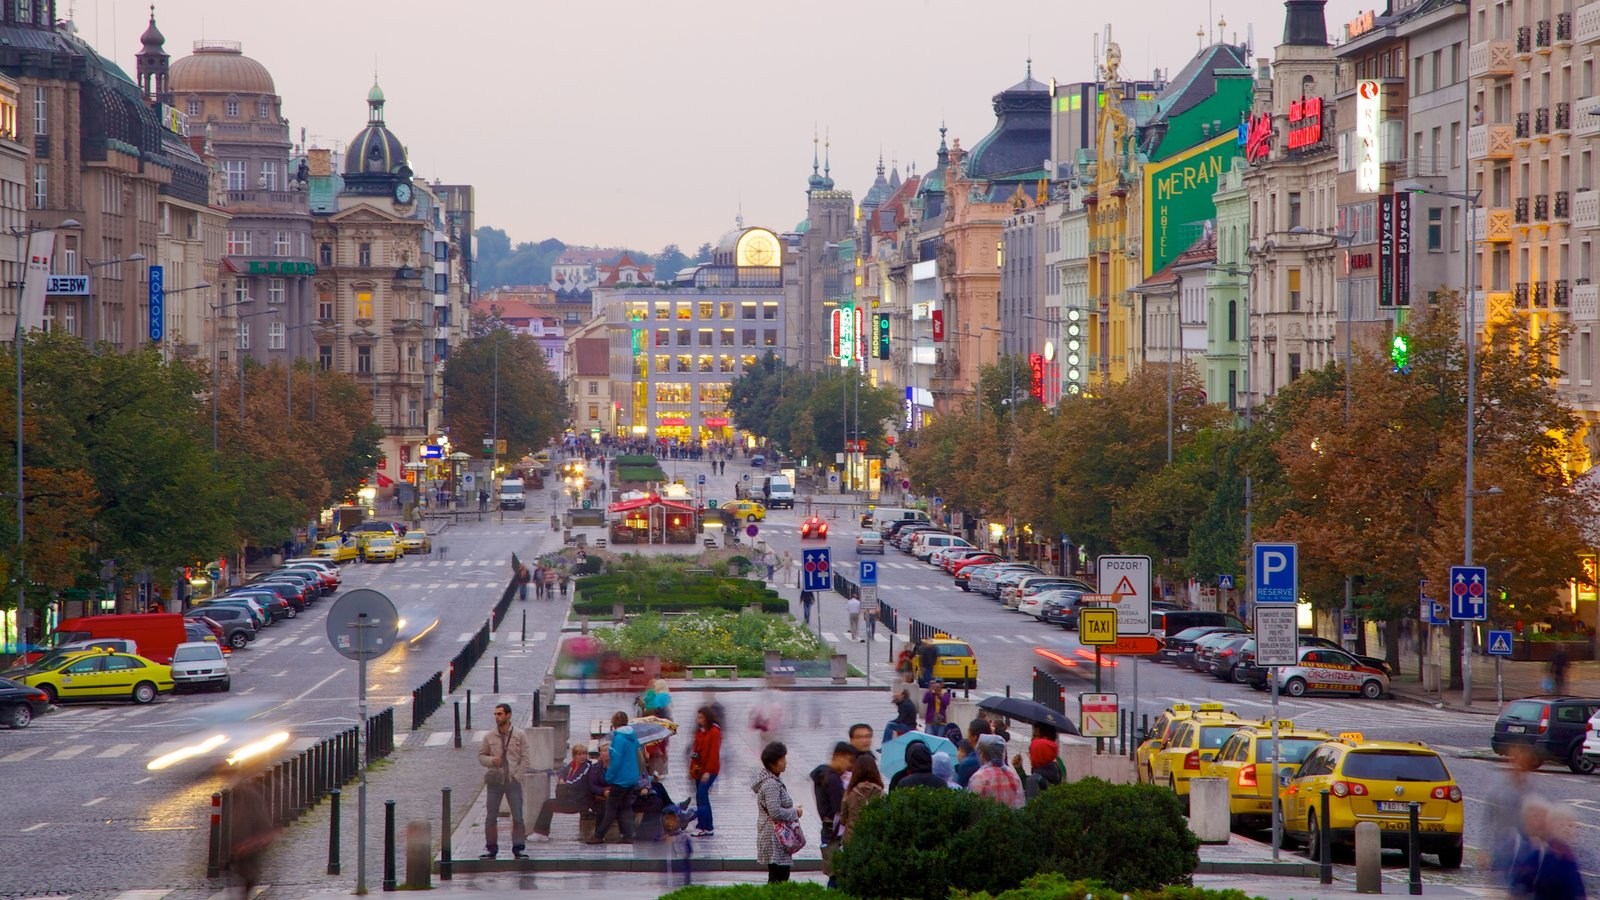 Wenceslas Square featuring street scenes, heritage architecture and a city